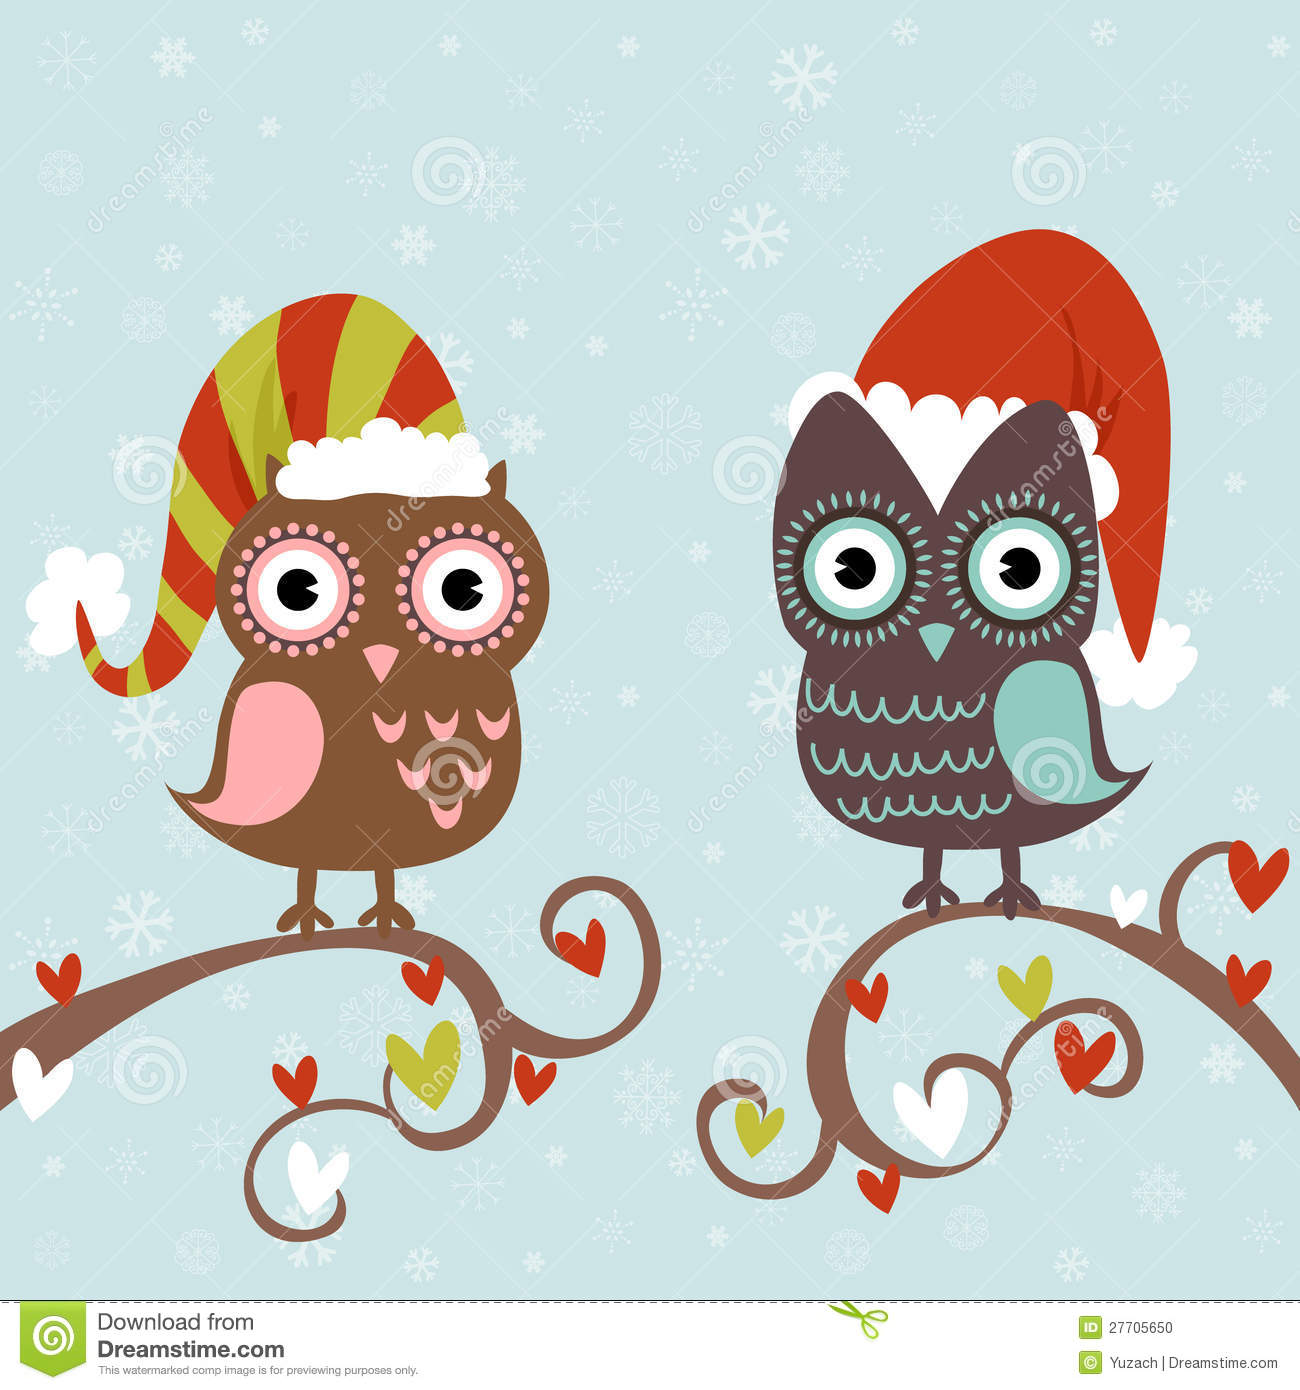 Christmas Card Of Owls In Hats Stock Photo - Image: 27705650